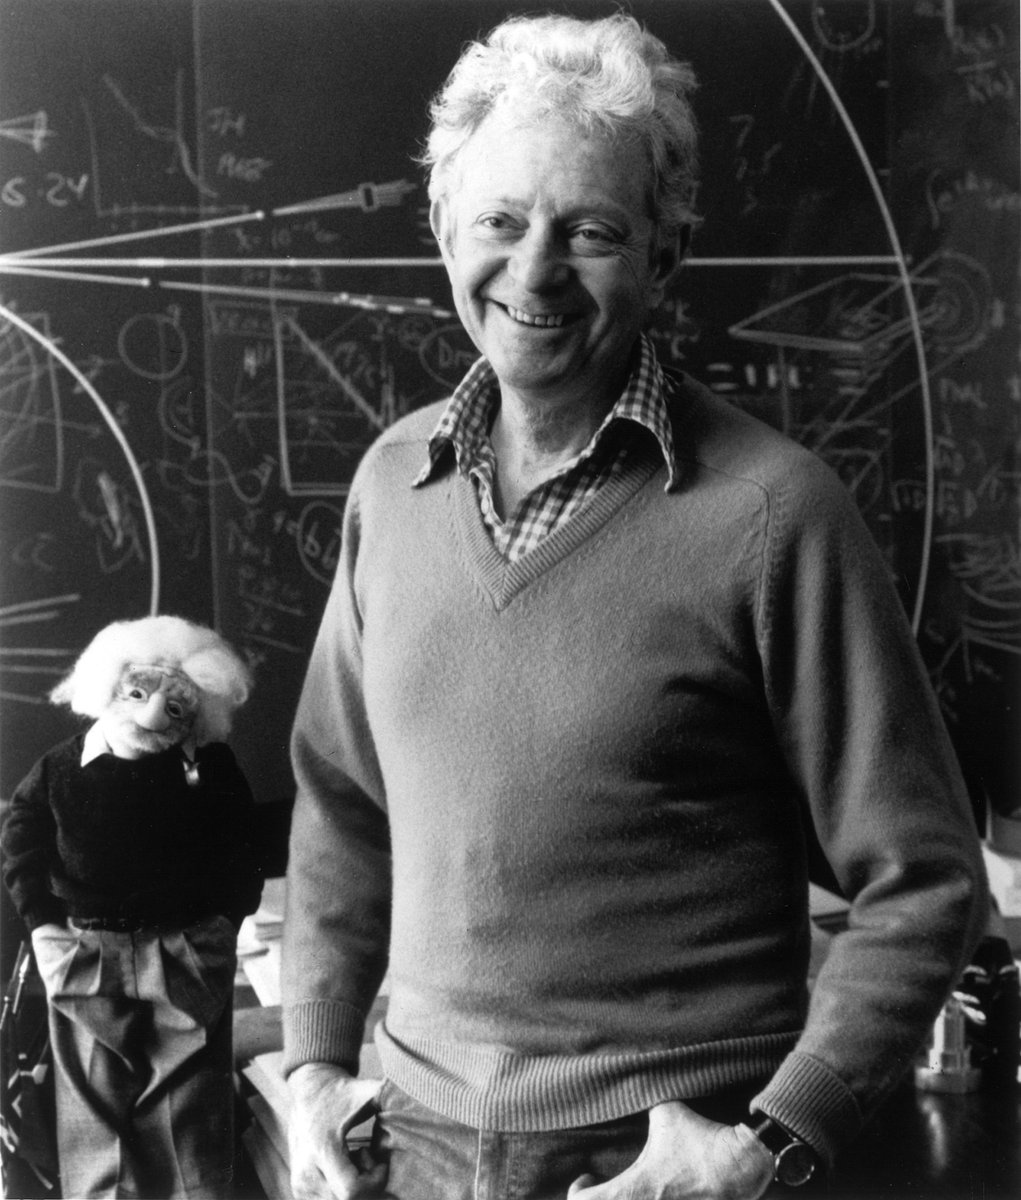 Remembering Nobel Laureate Leon Lederman who was born #OTD 1922.  Lederman, Melvin Schwartz and Jack Steinberger were awarded the 1988 Physics Prize for creating a beam of neutrinos using a high-energy accelerator and for proving the existence of the muon neutrino.